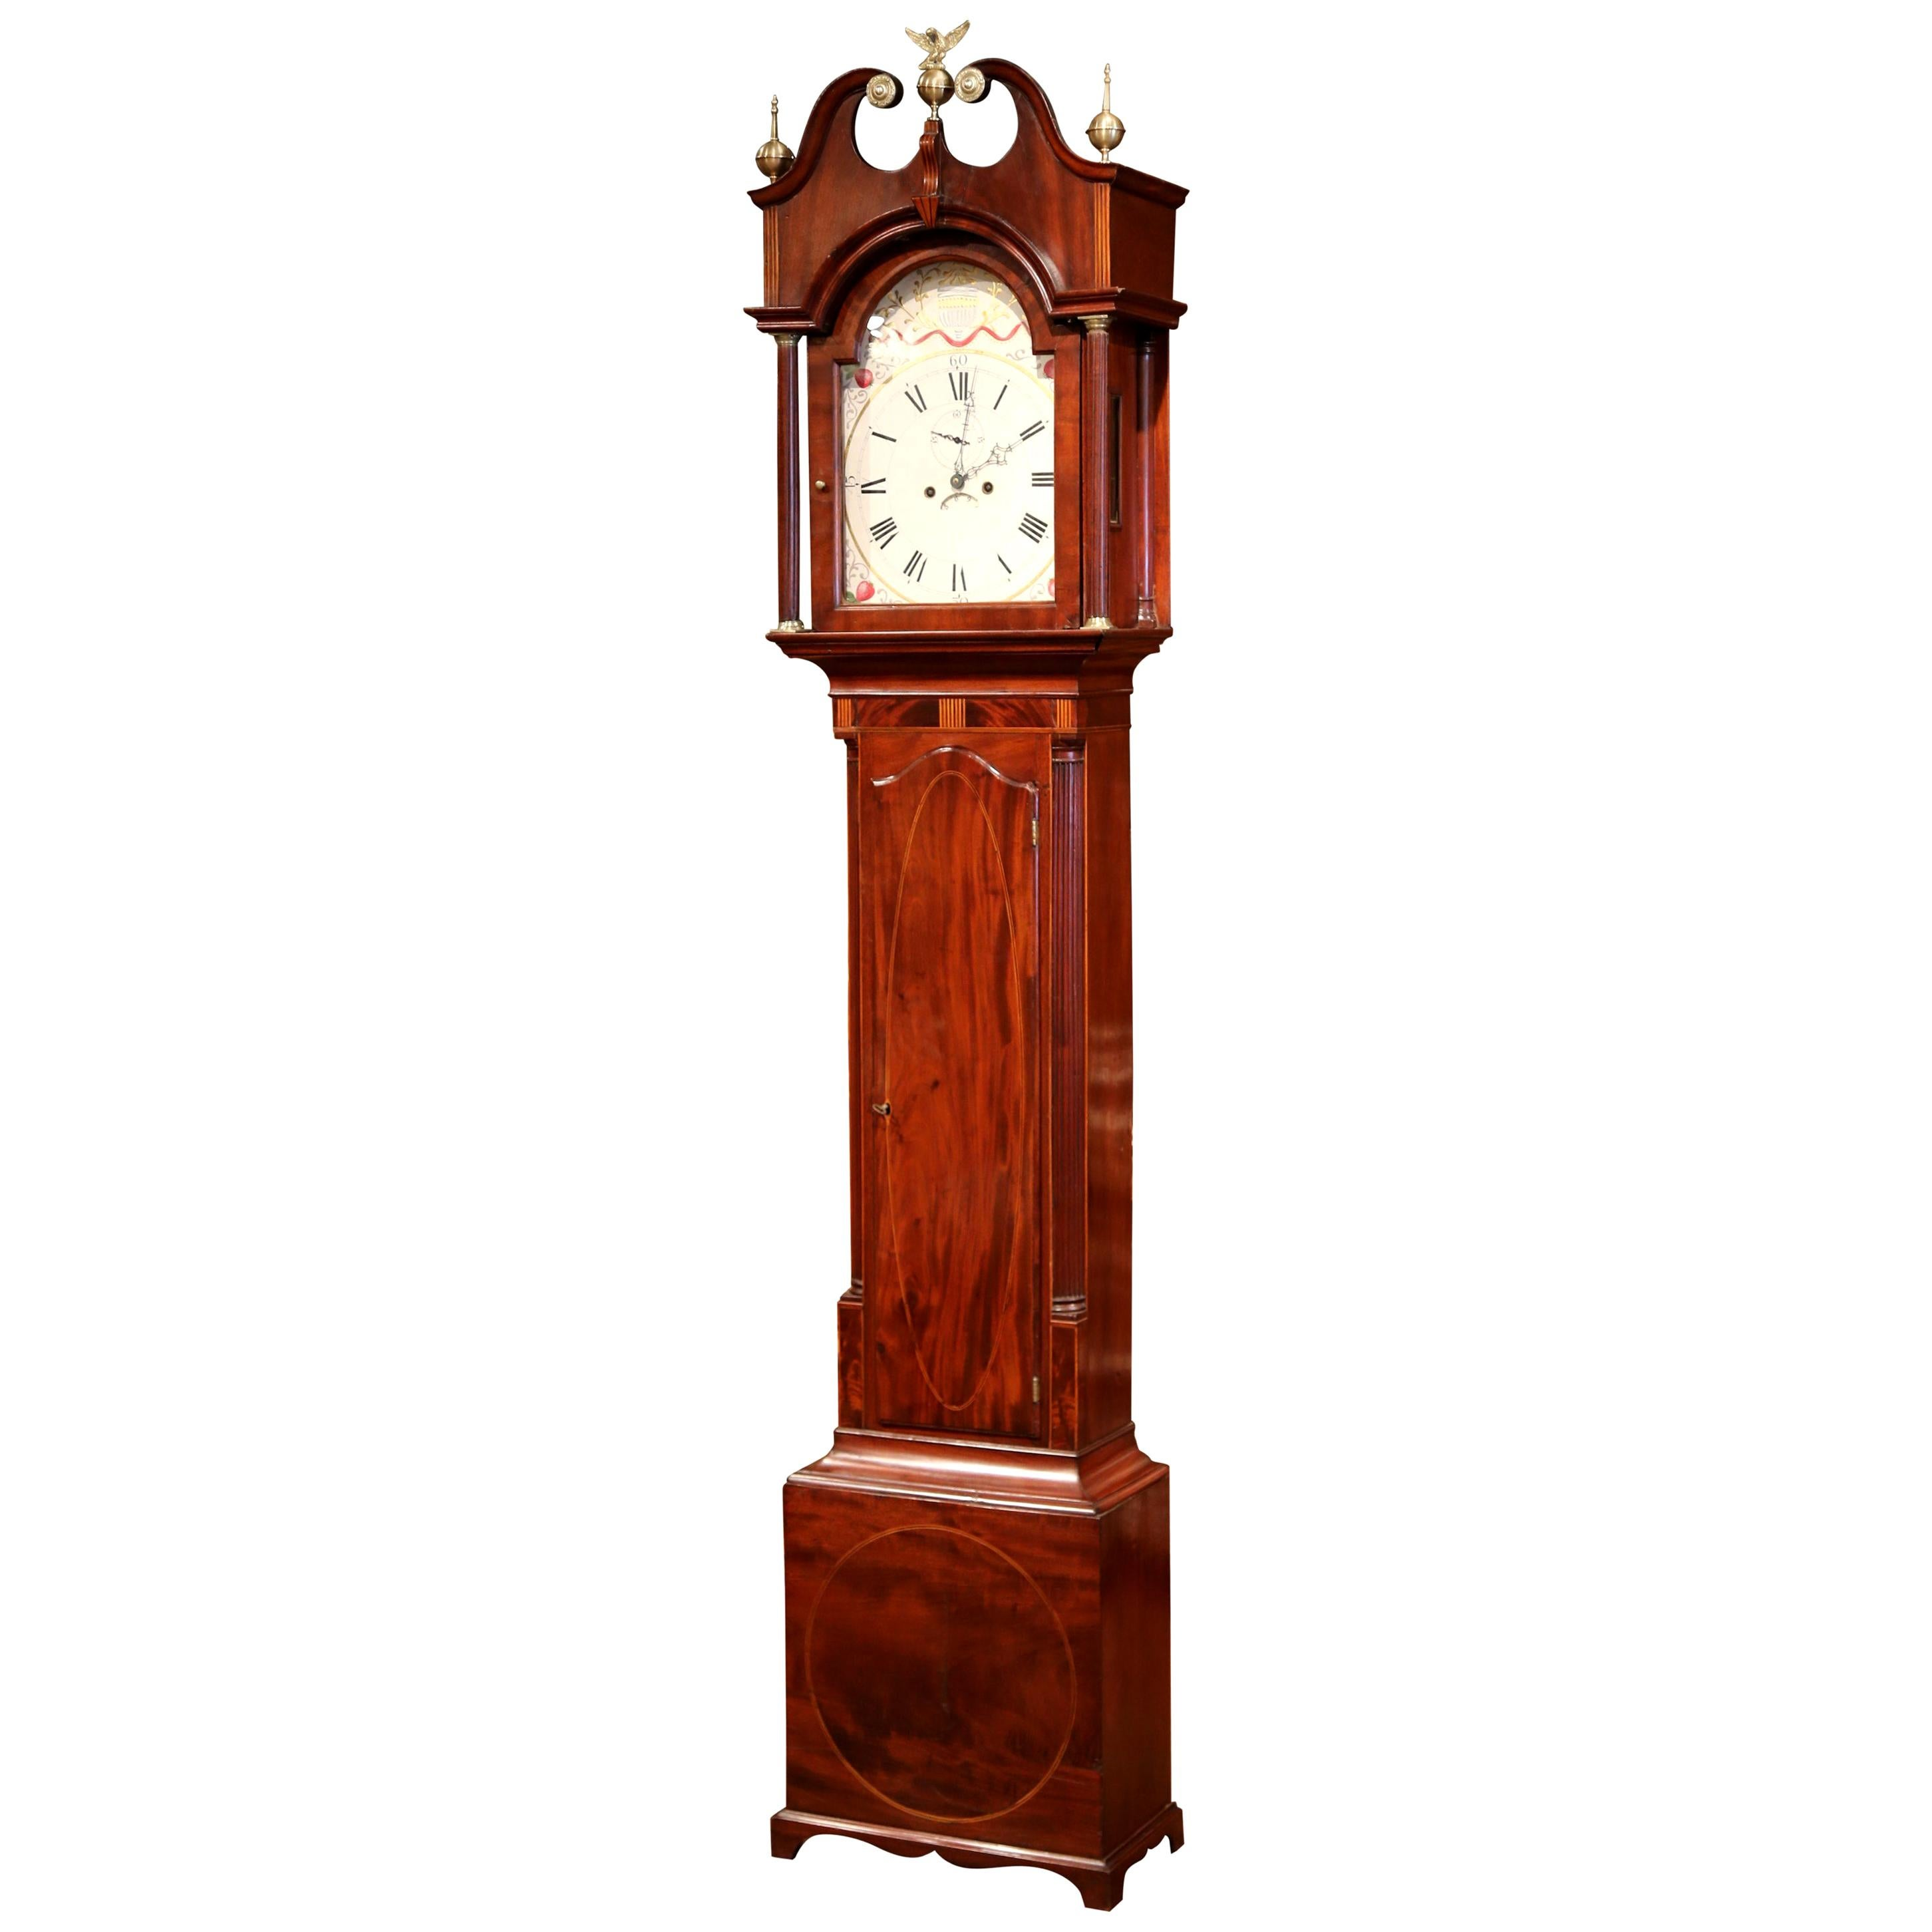 18th Century English Carved Mahogany Tall Case Clock with Brass Mounts